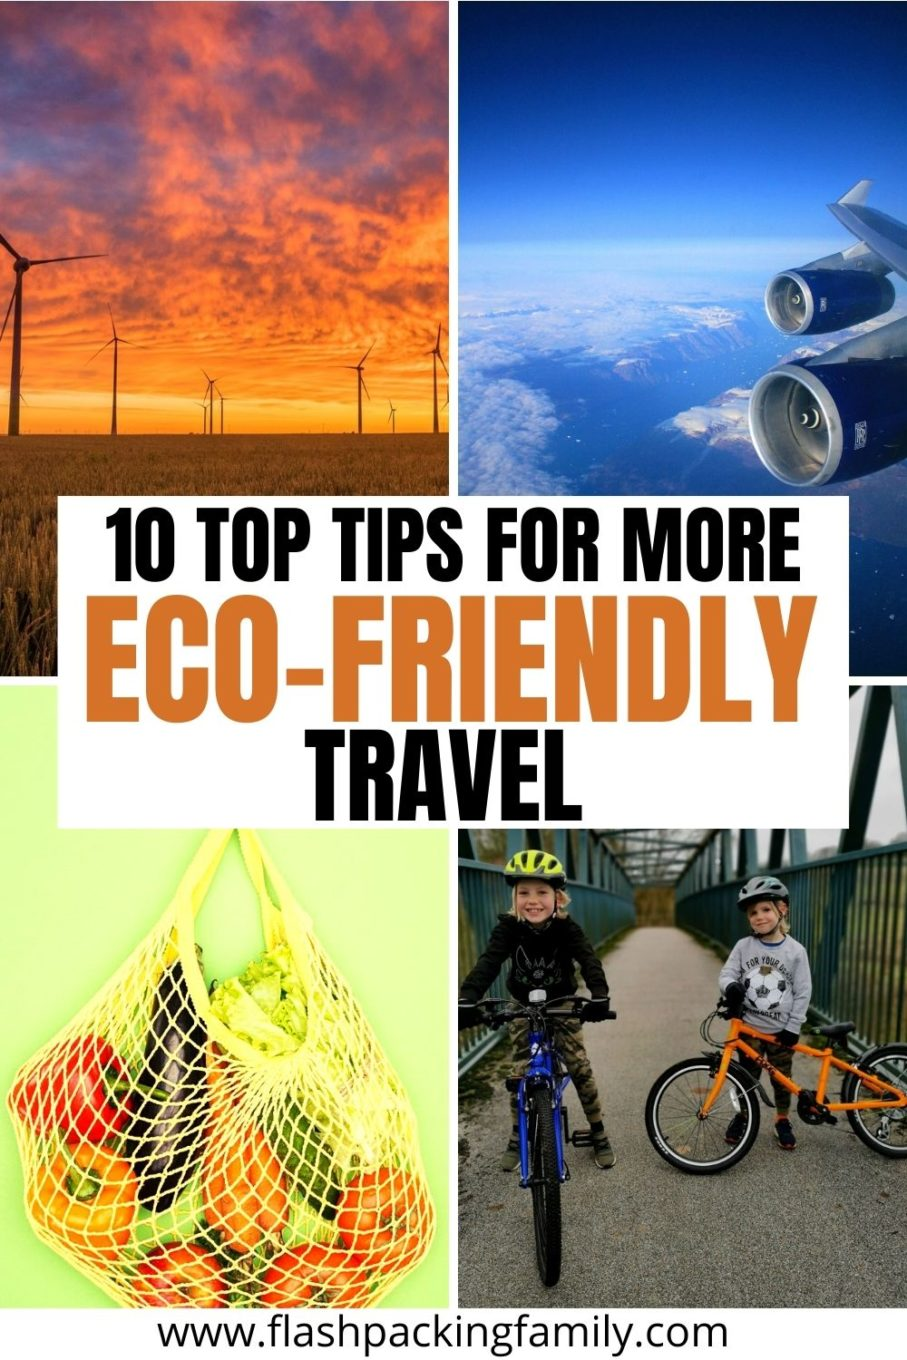 10 Top Tips for Eco-Friendly Travel